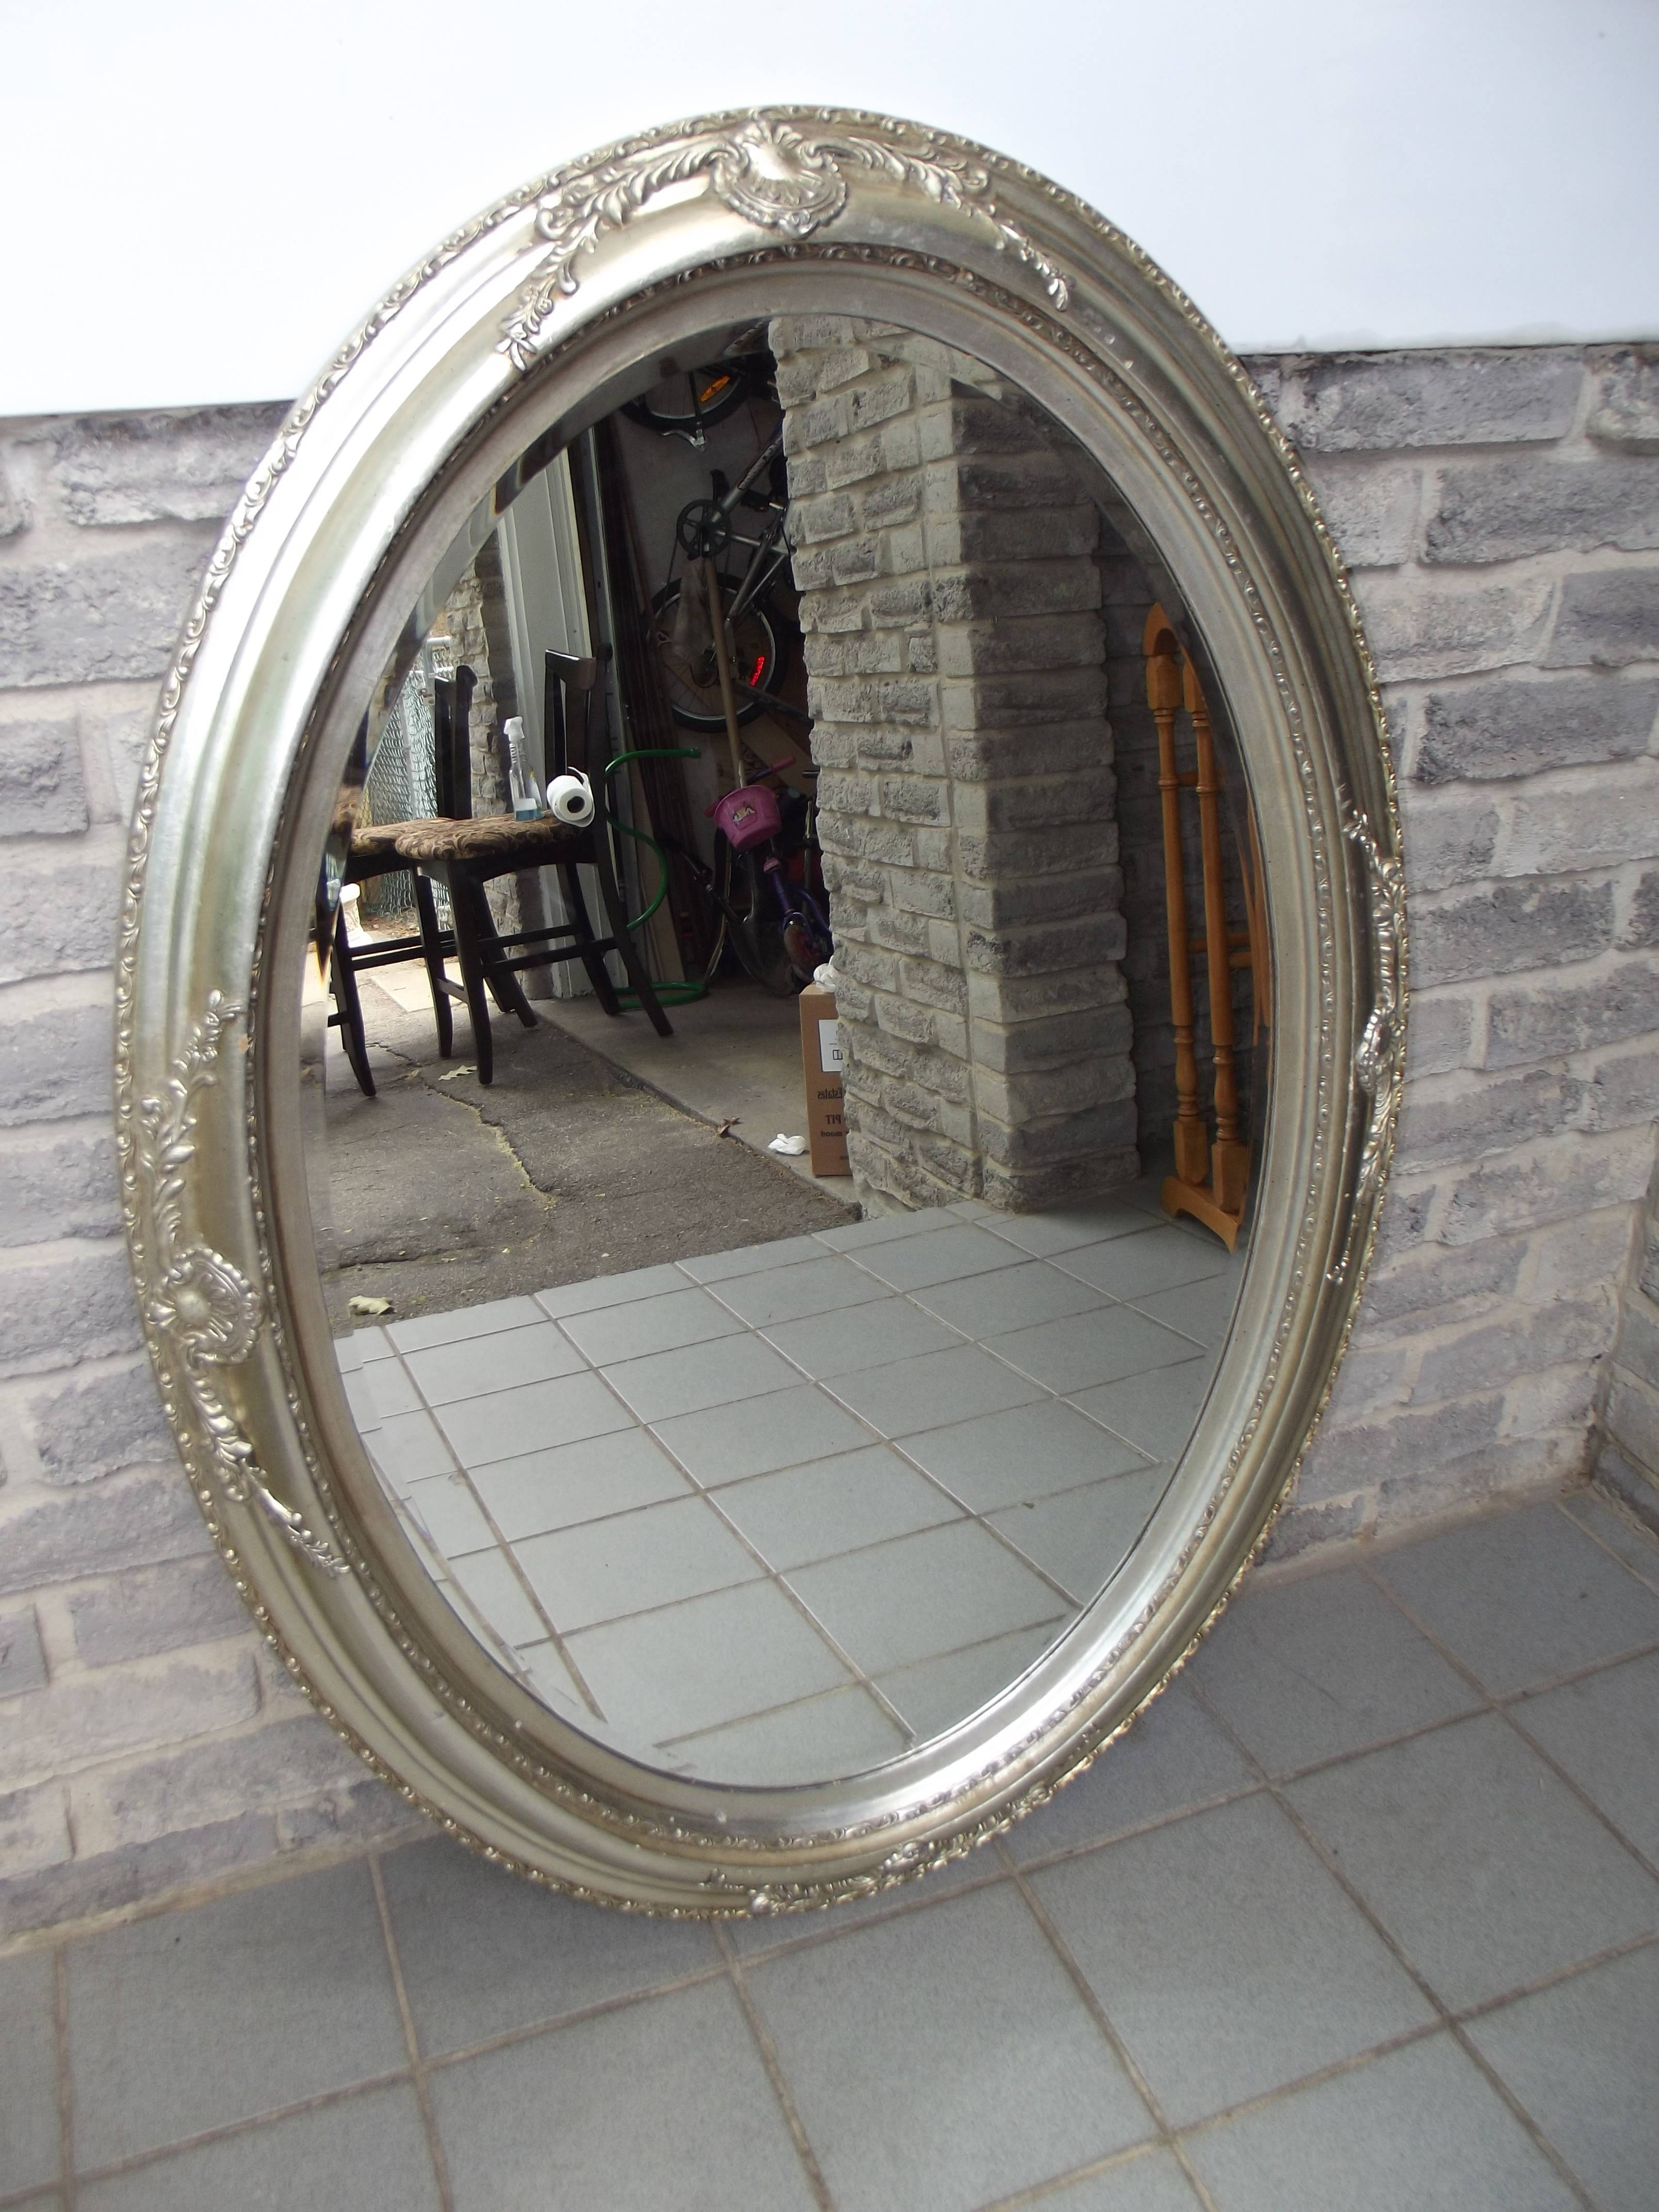 Silver Oval Wall Mirror - Secondhand Pursuit regarding Silver Oval Wall Mirrors (Image 24 of 25)